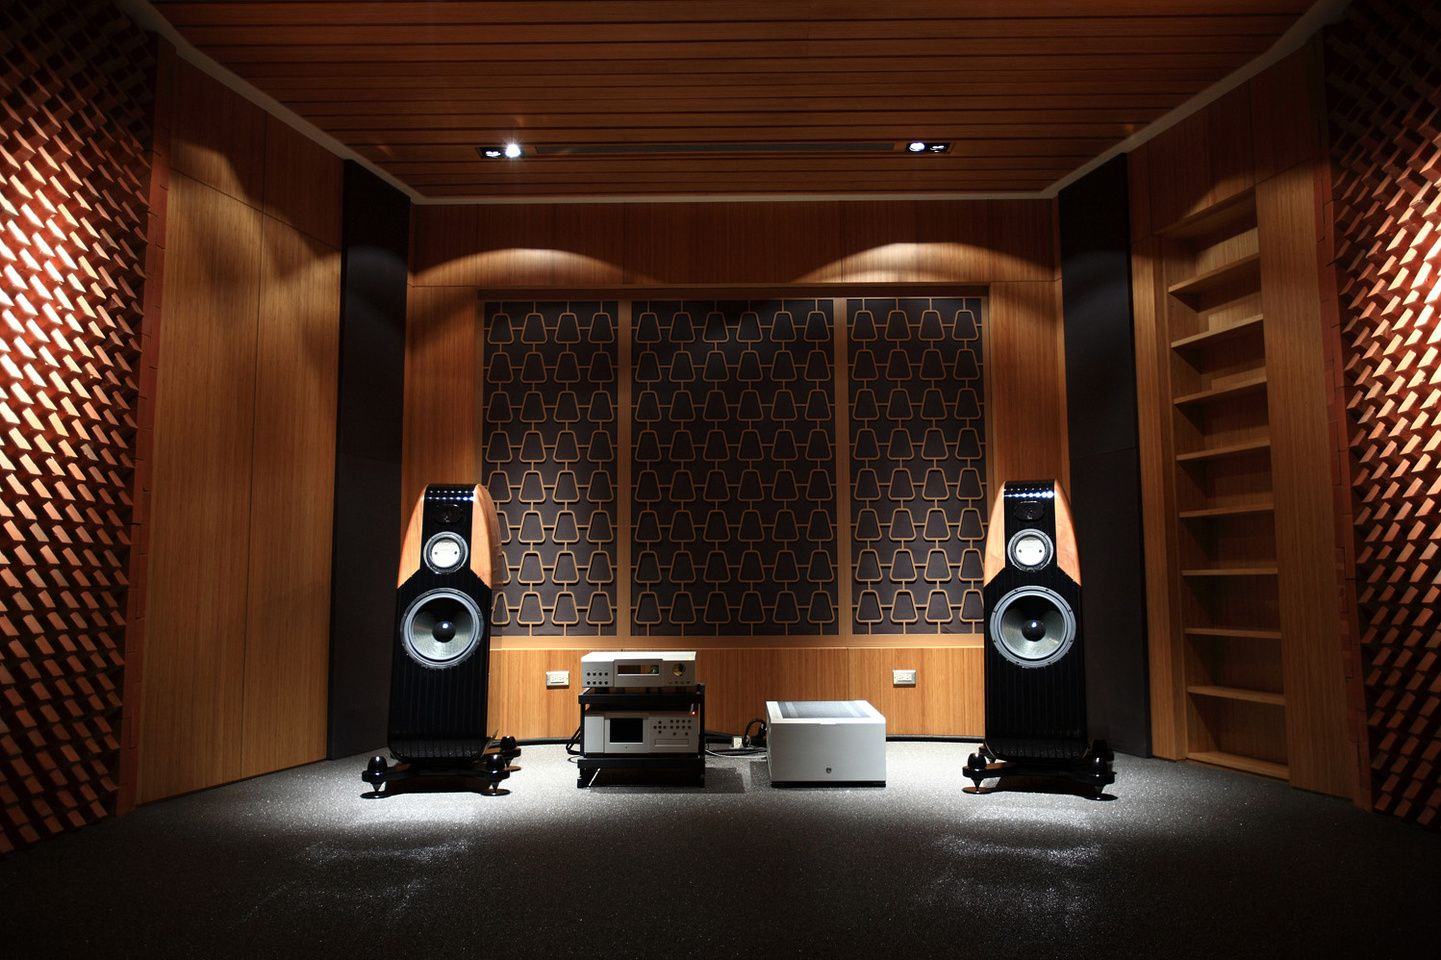 If you've ever considered having an audio room in your home, you should do it! These audio room ideas are amazing. See all the different ideas there are for audio rooms.